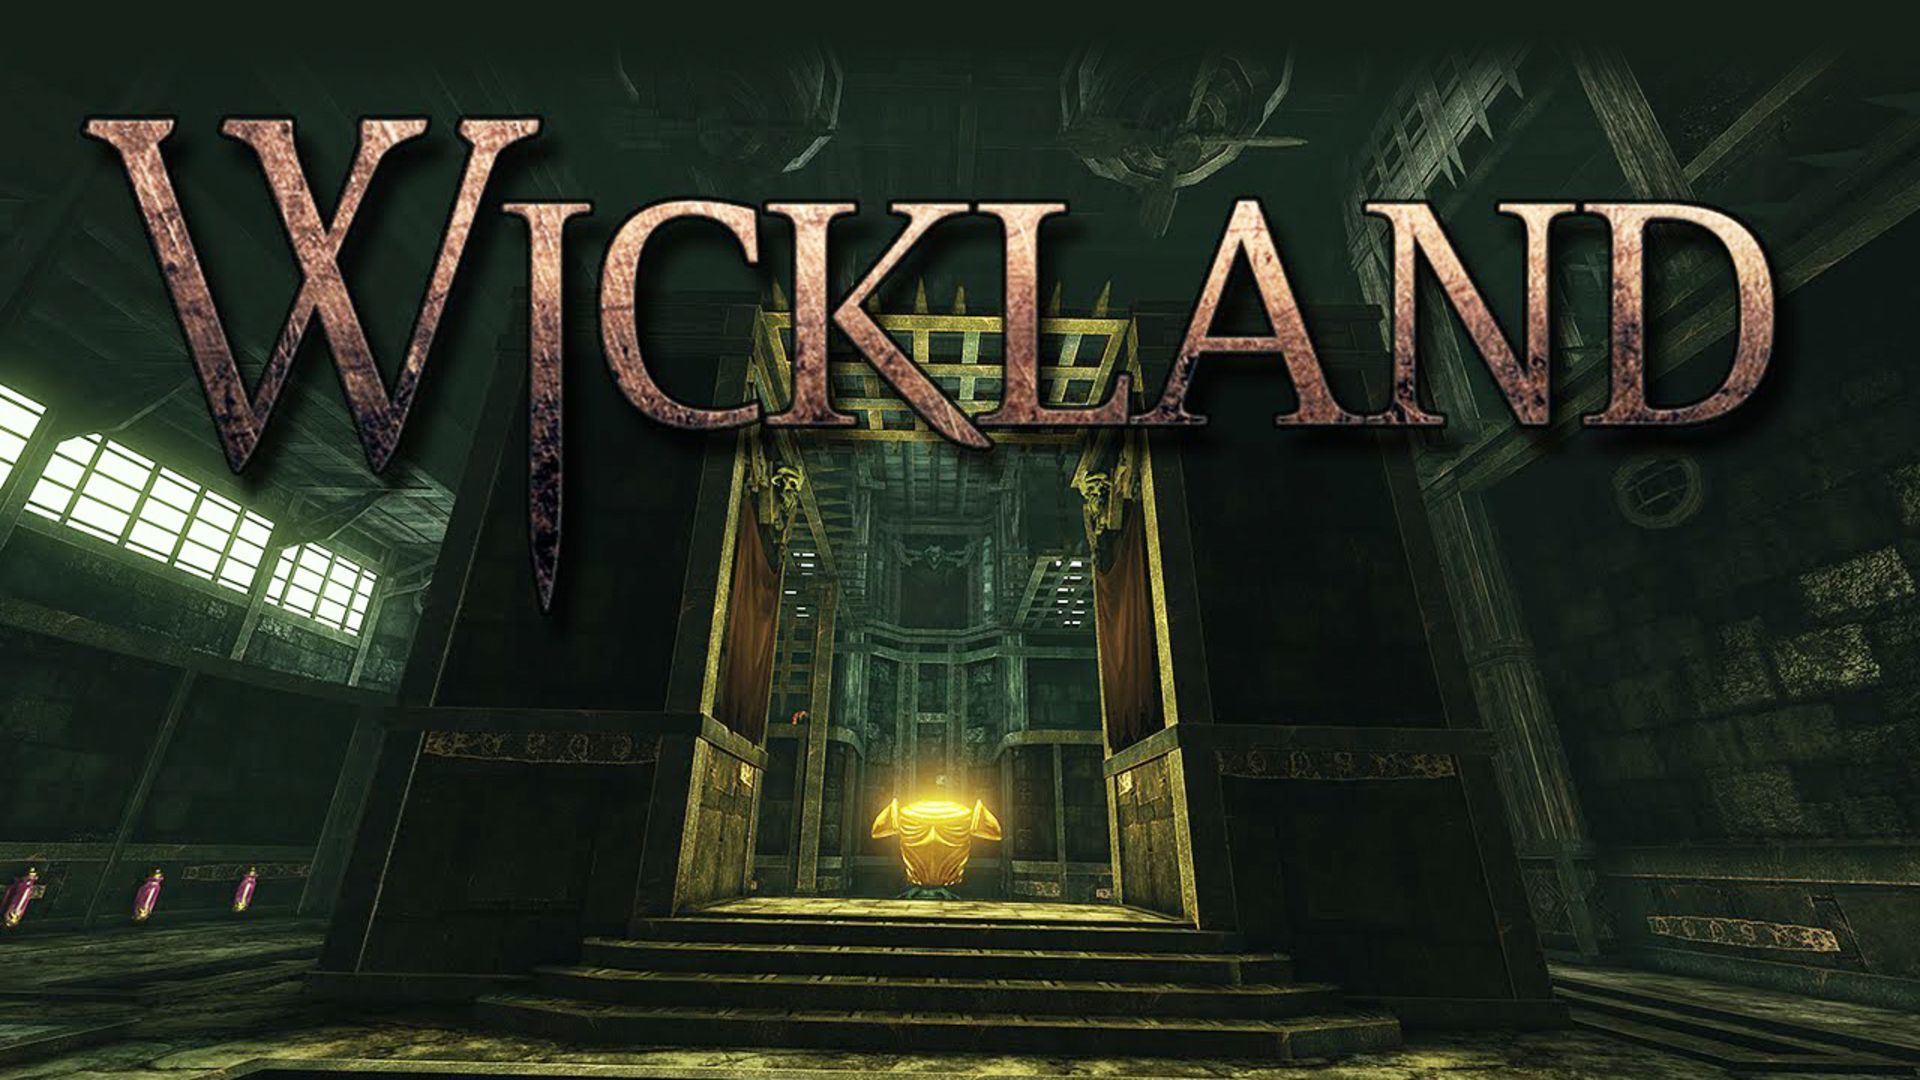 #Wickland